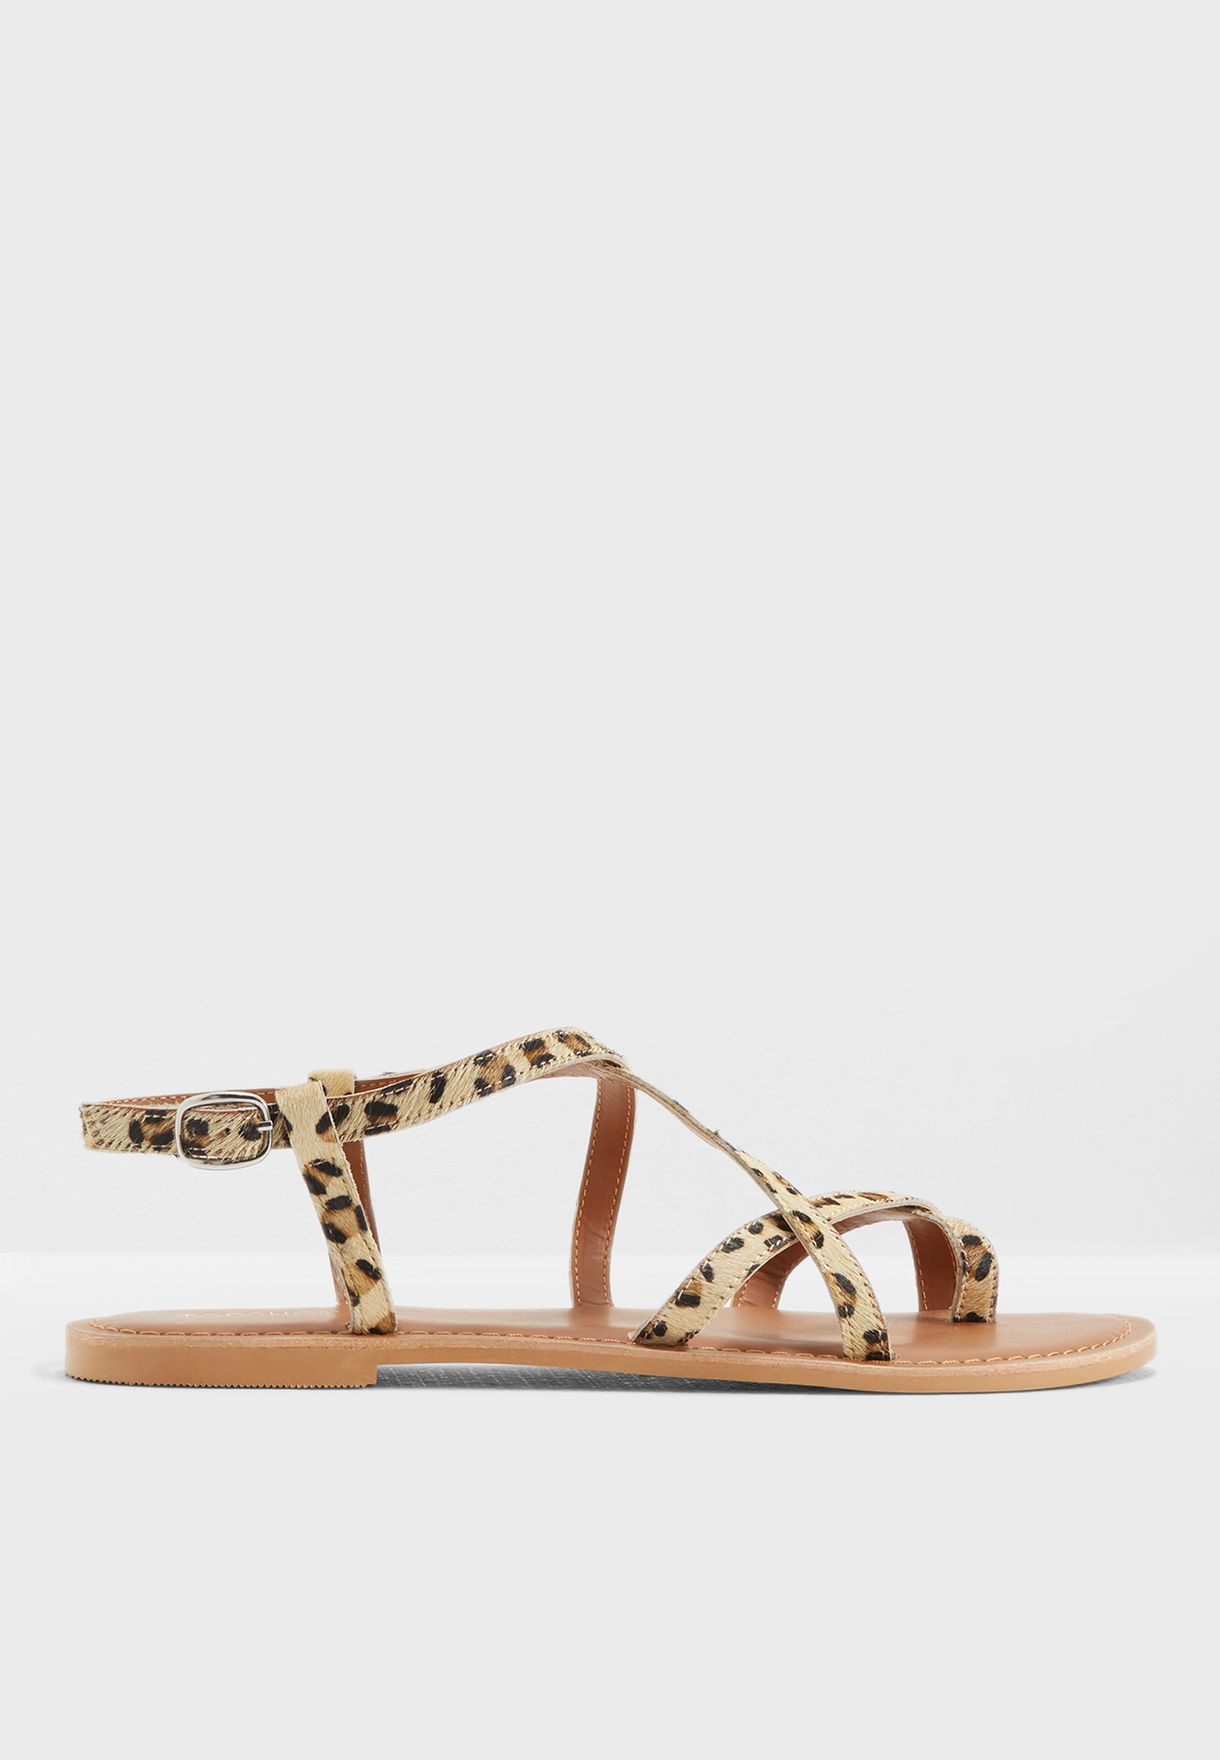 421b6af7cd409c Shop Topshop prints Hiccup Strappy Sandals 42H11NTRL for Women in ...